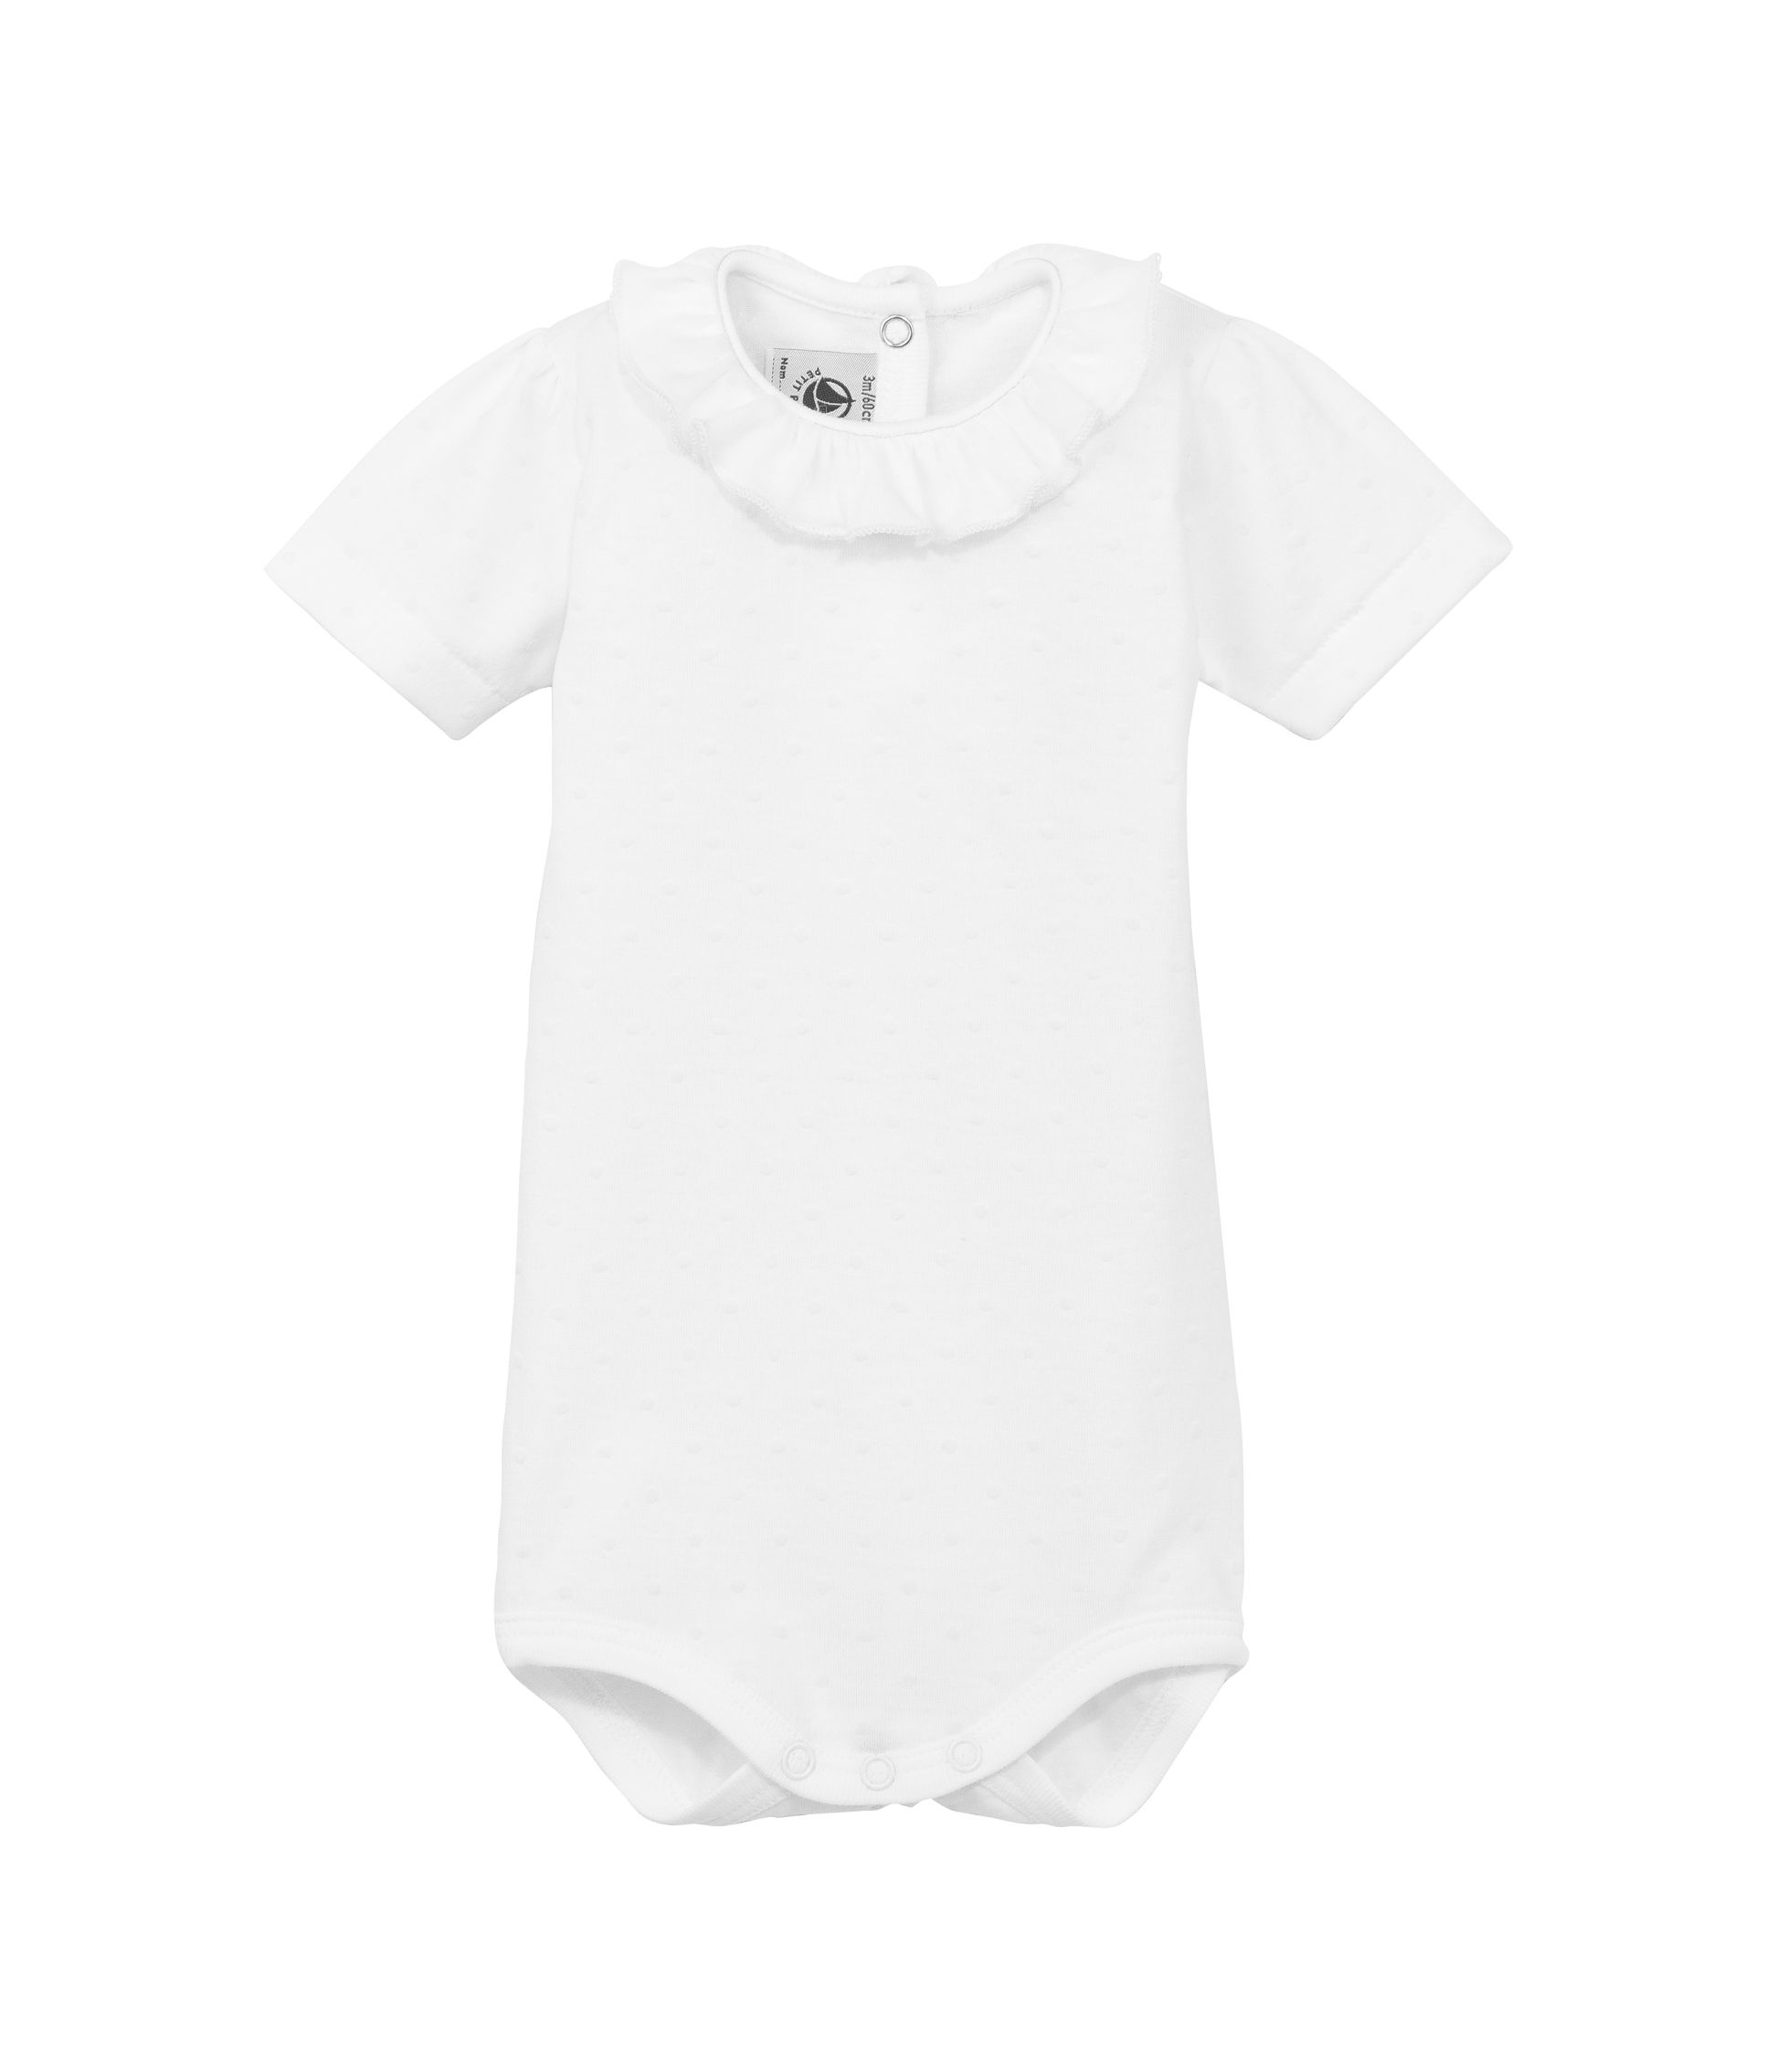 Baby girls short sleeve bodysuit